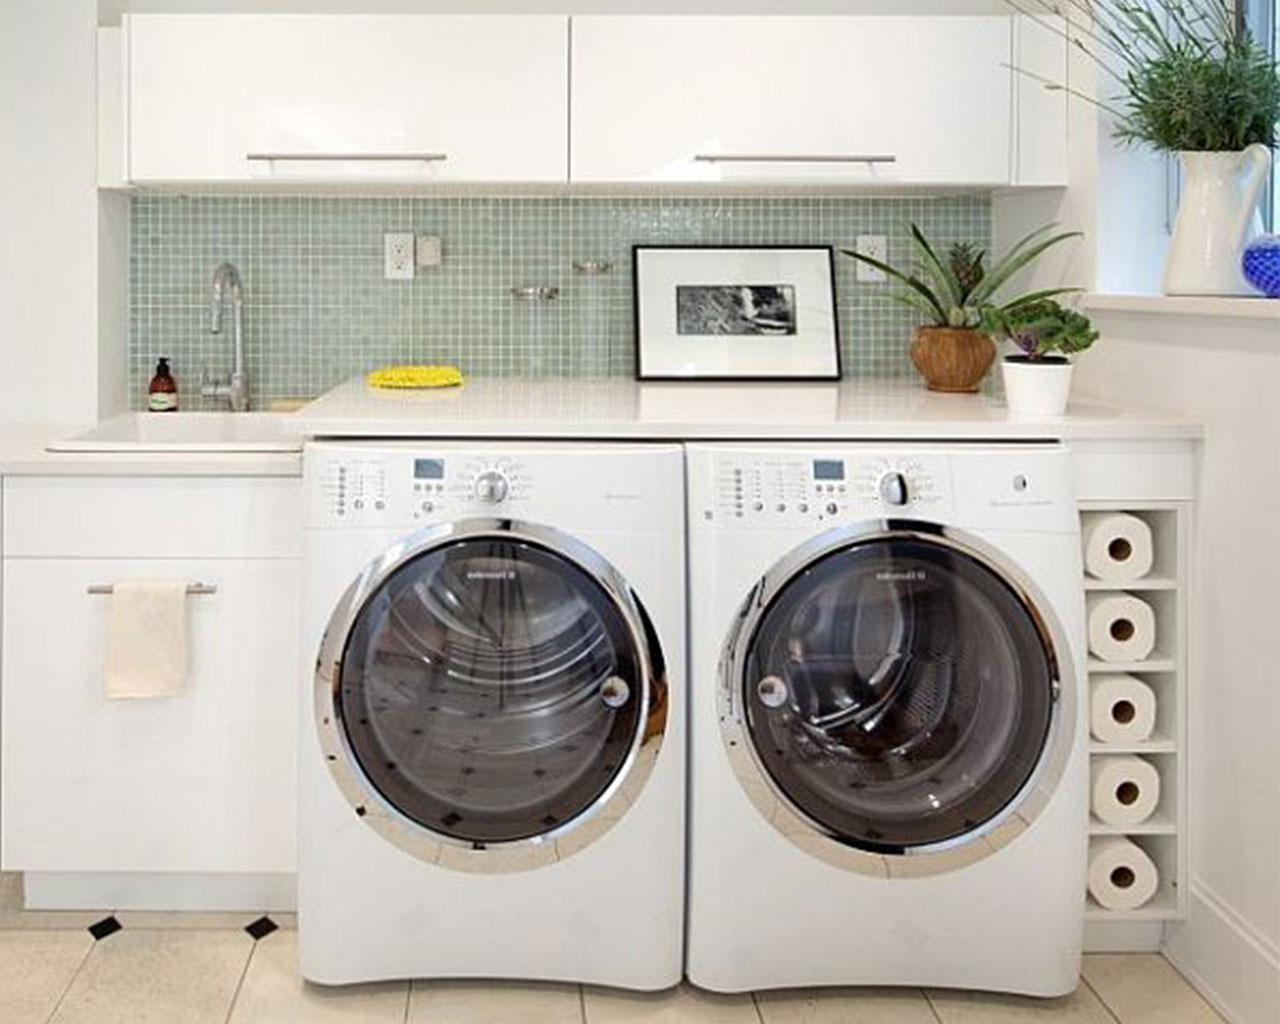 Bedroom Decor Ideas On A Budget 25 Brilliantly Clever Laundry Room Design Ideas